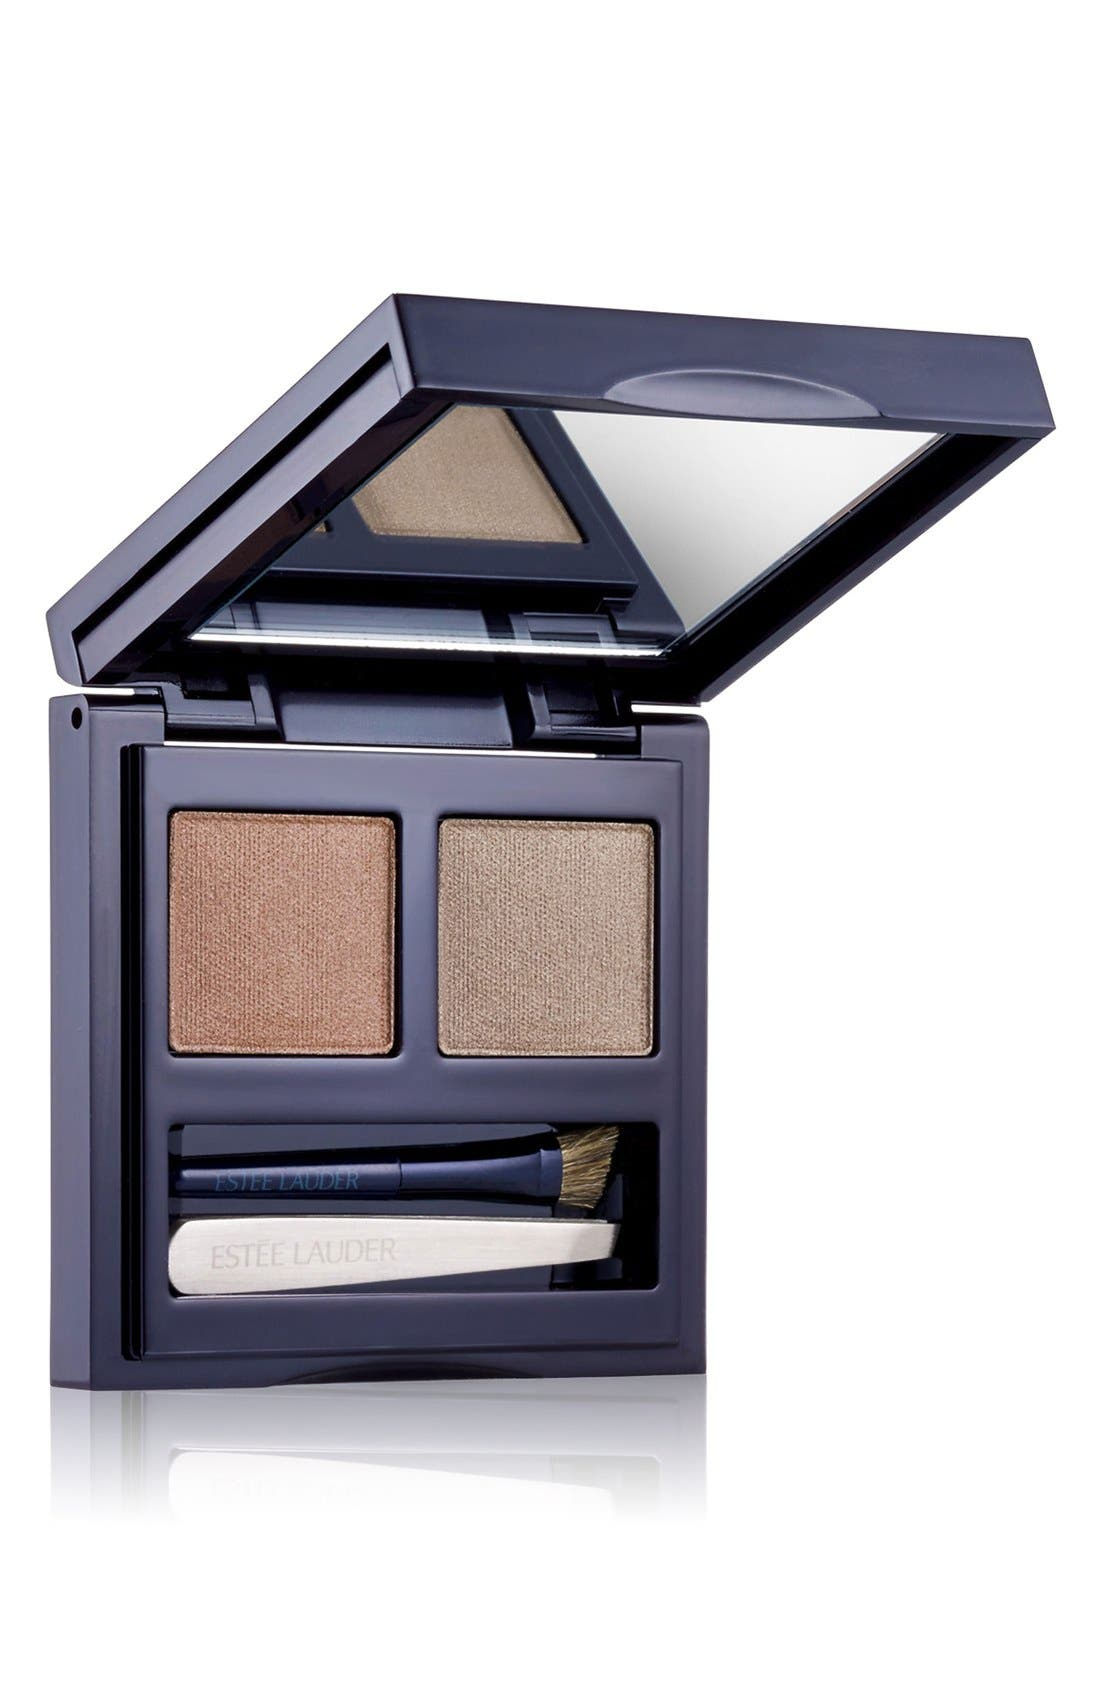 Image of Estee Lauder Brow Now All-In-One Brow Kit - Brunette